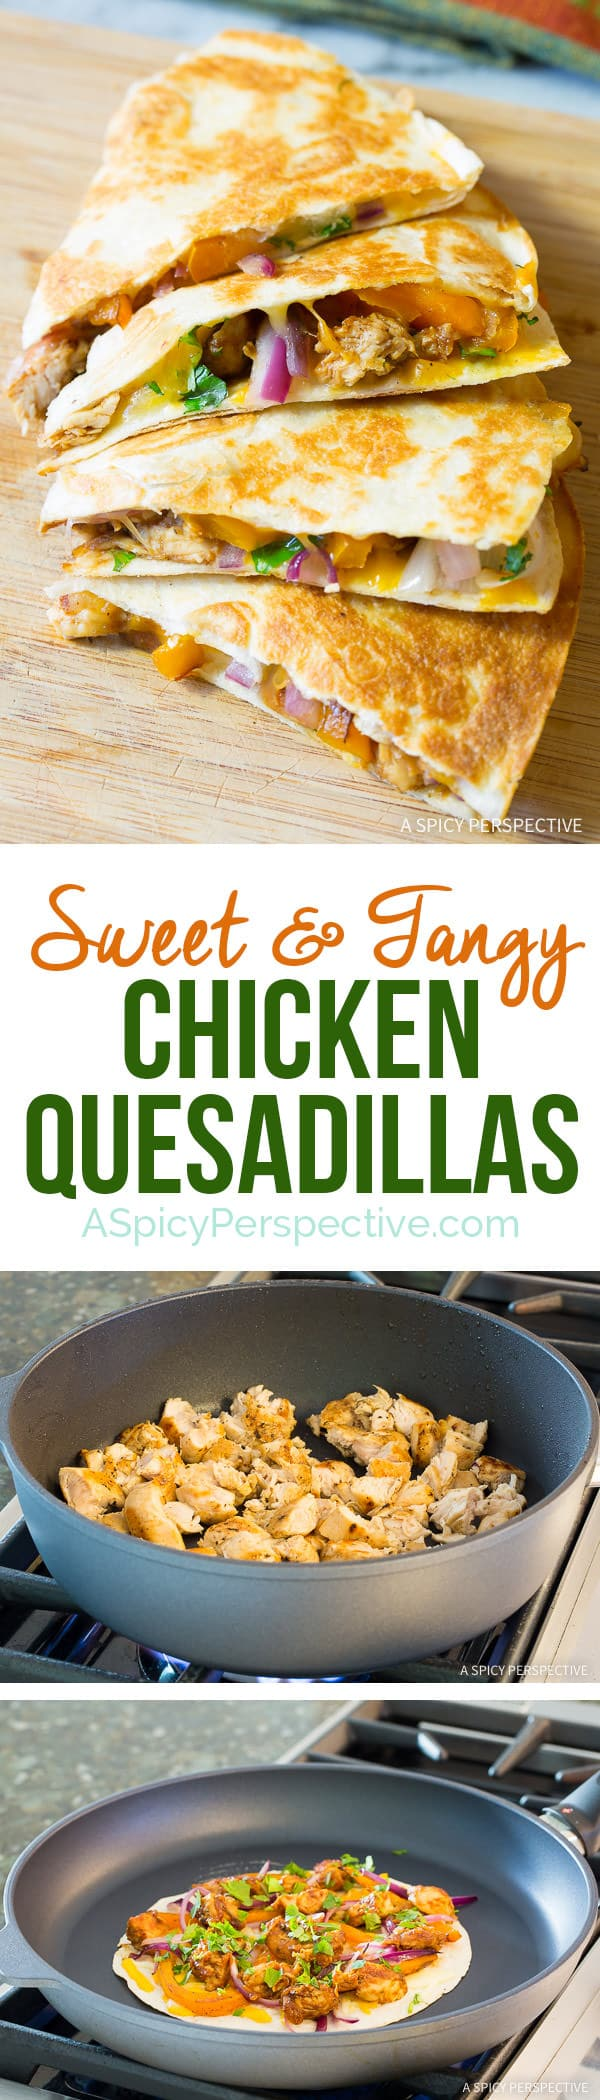 Great for Super Bowl! 10-Ingredient Sweet and Tangy Chicken Quesadillas Recipe | ASpicyPerspective.com